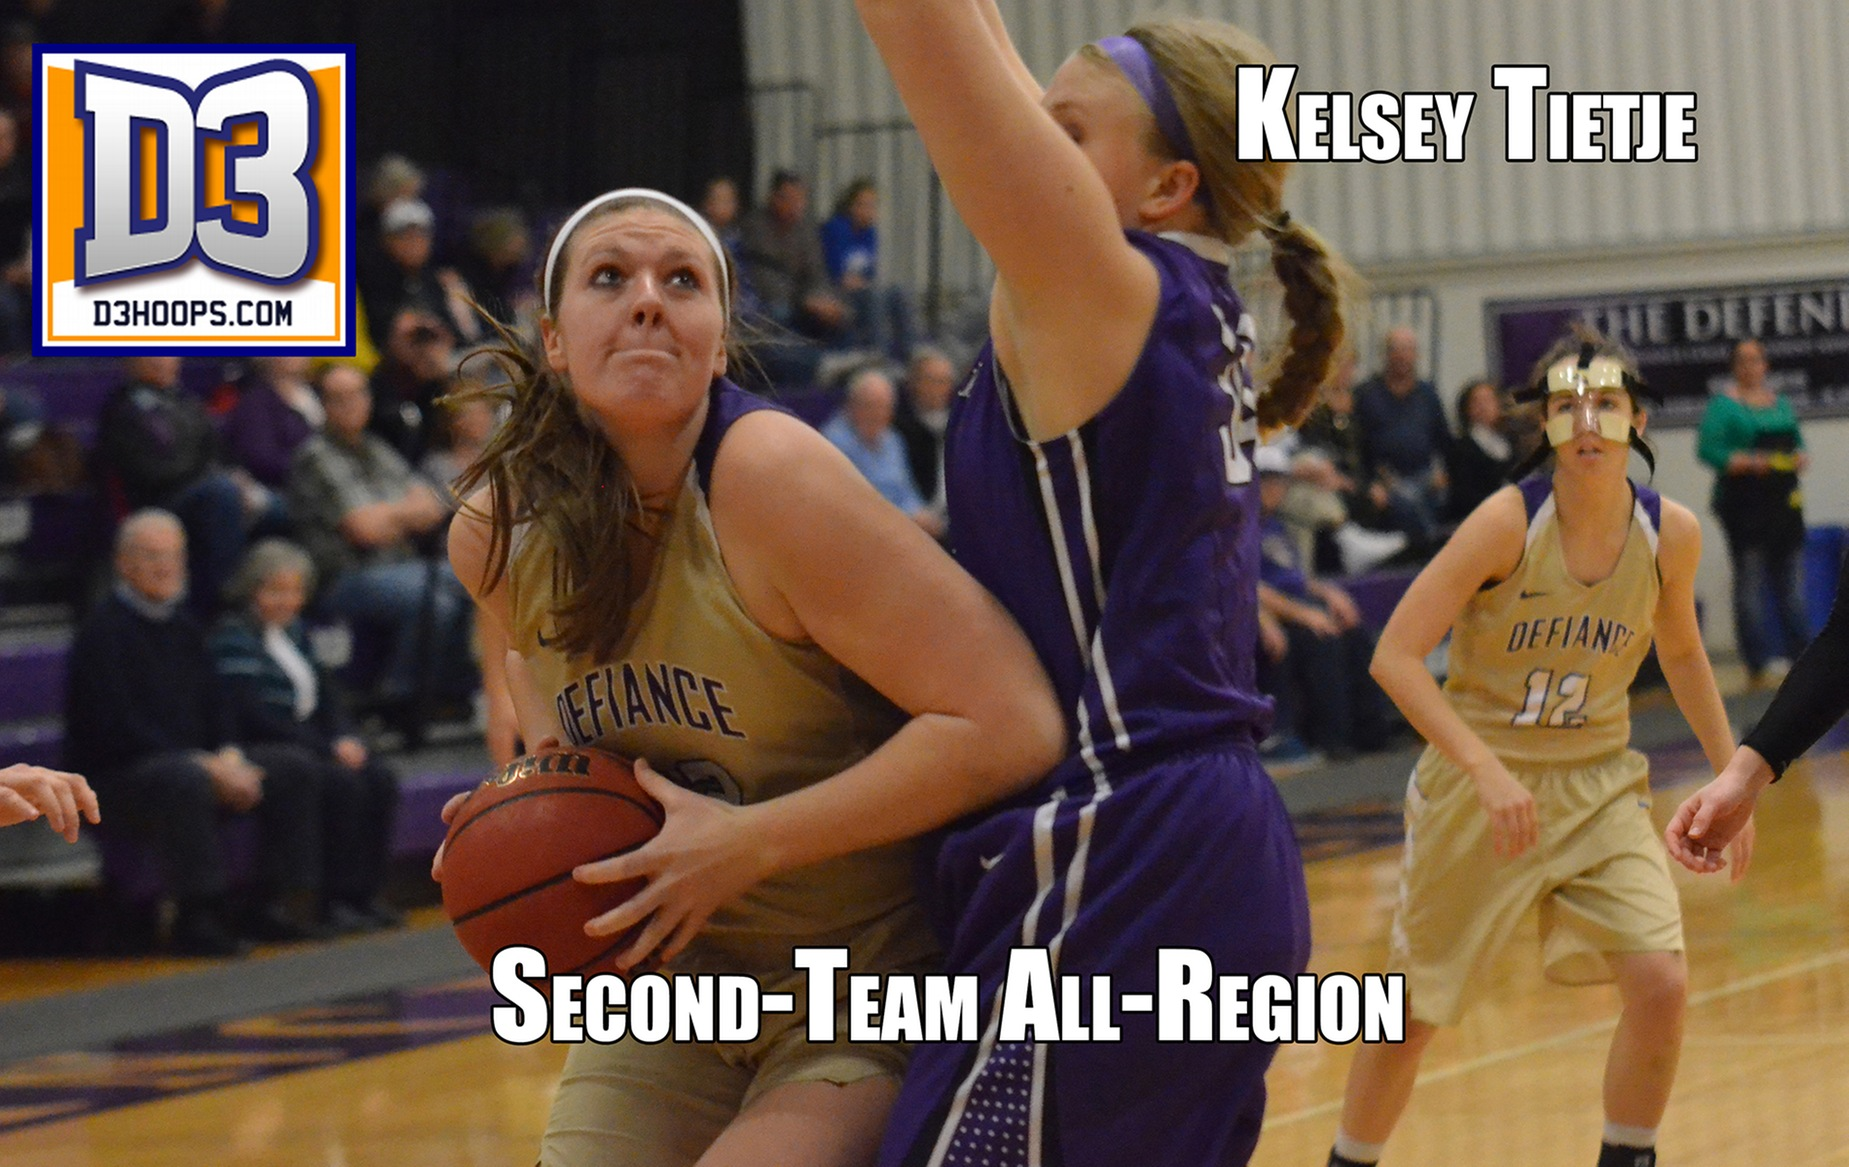 DC's Kelsey Tietje Named Second-Team All-Region By D3hoops